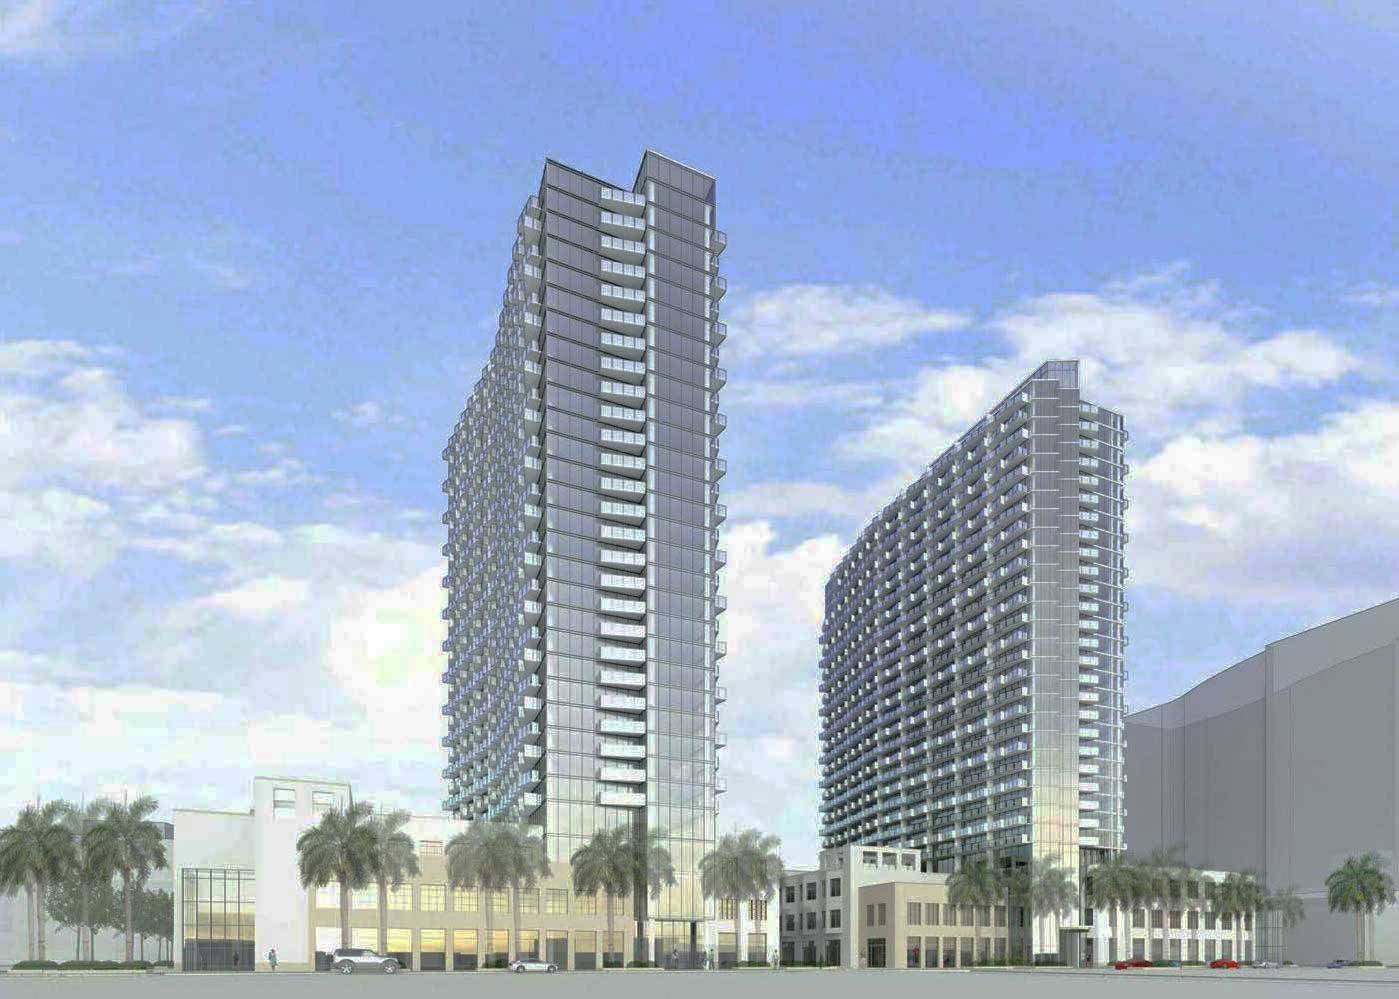 City board leaves two Midtown Miami towers in limbo